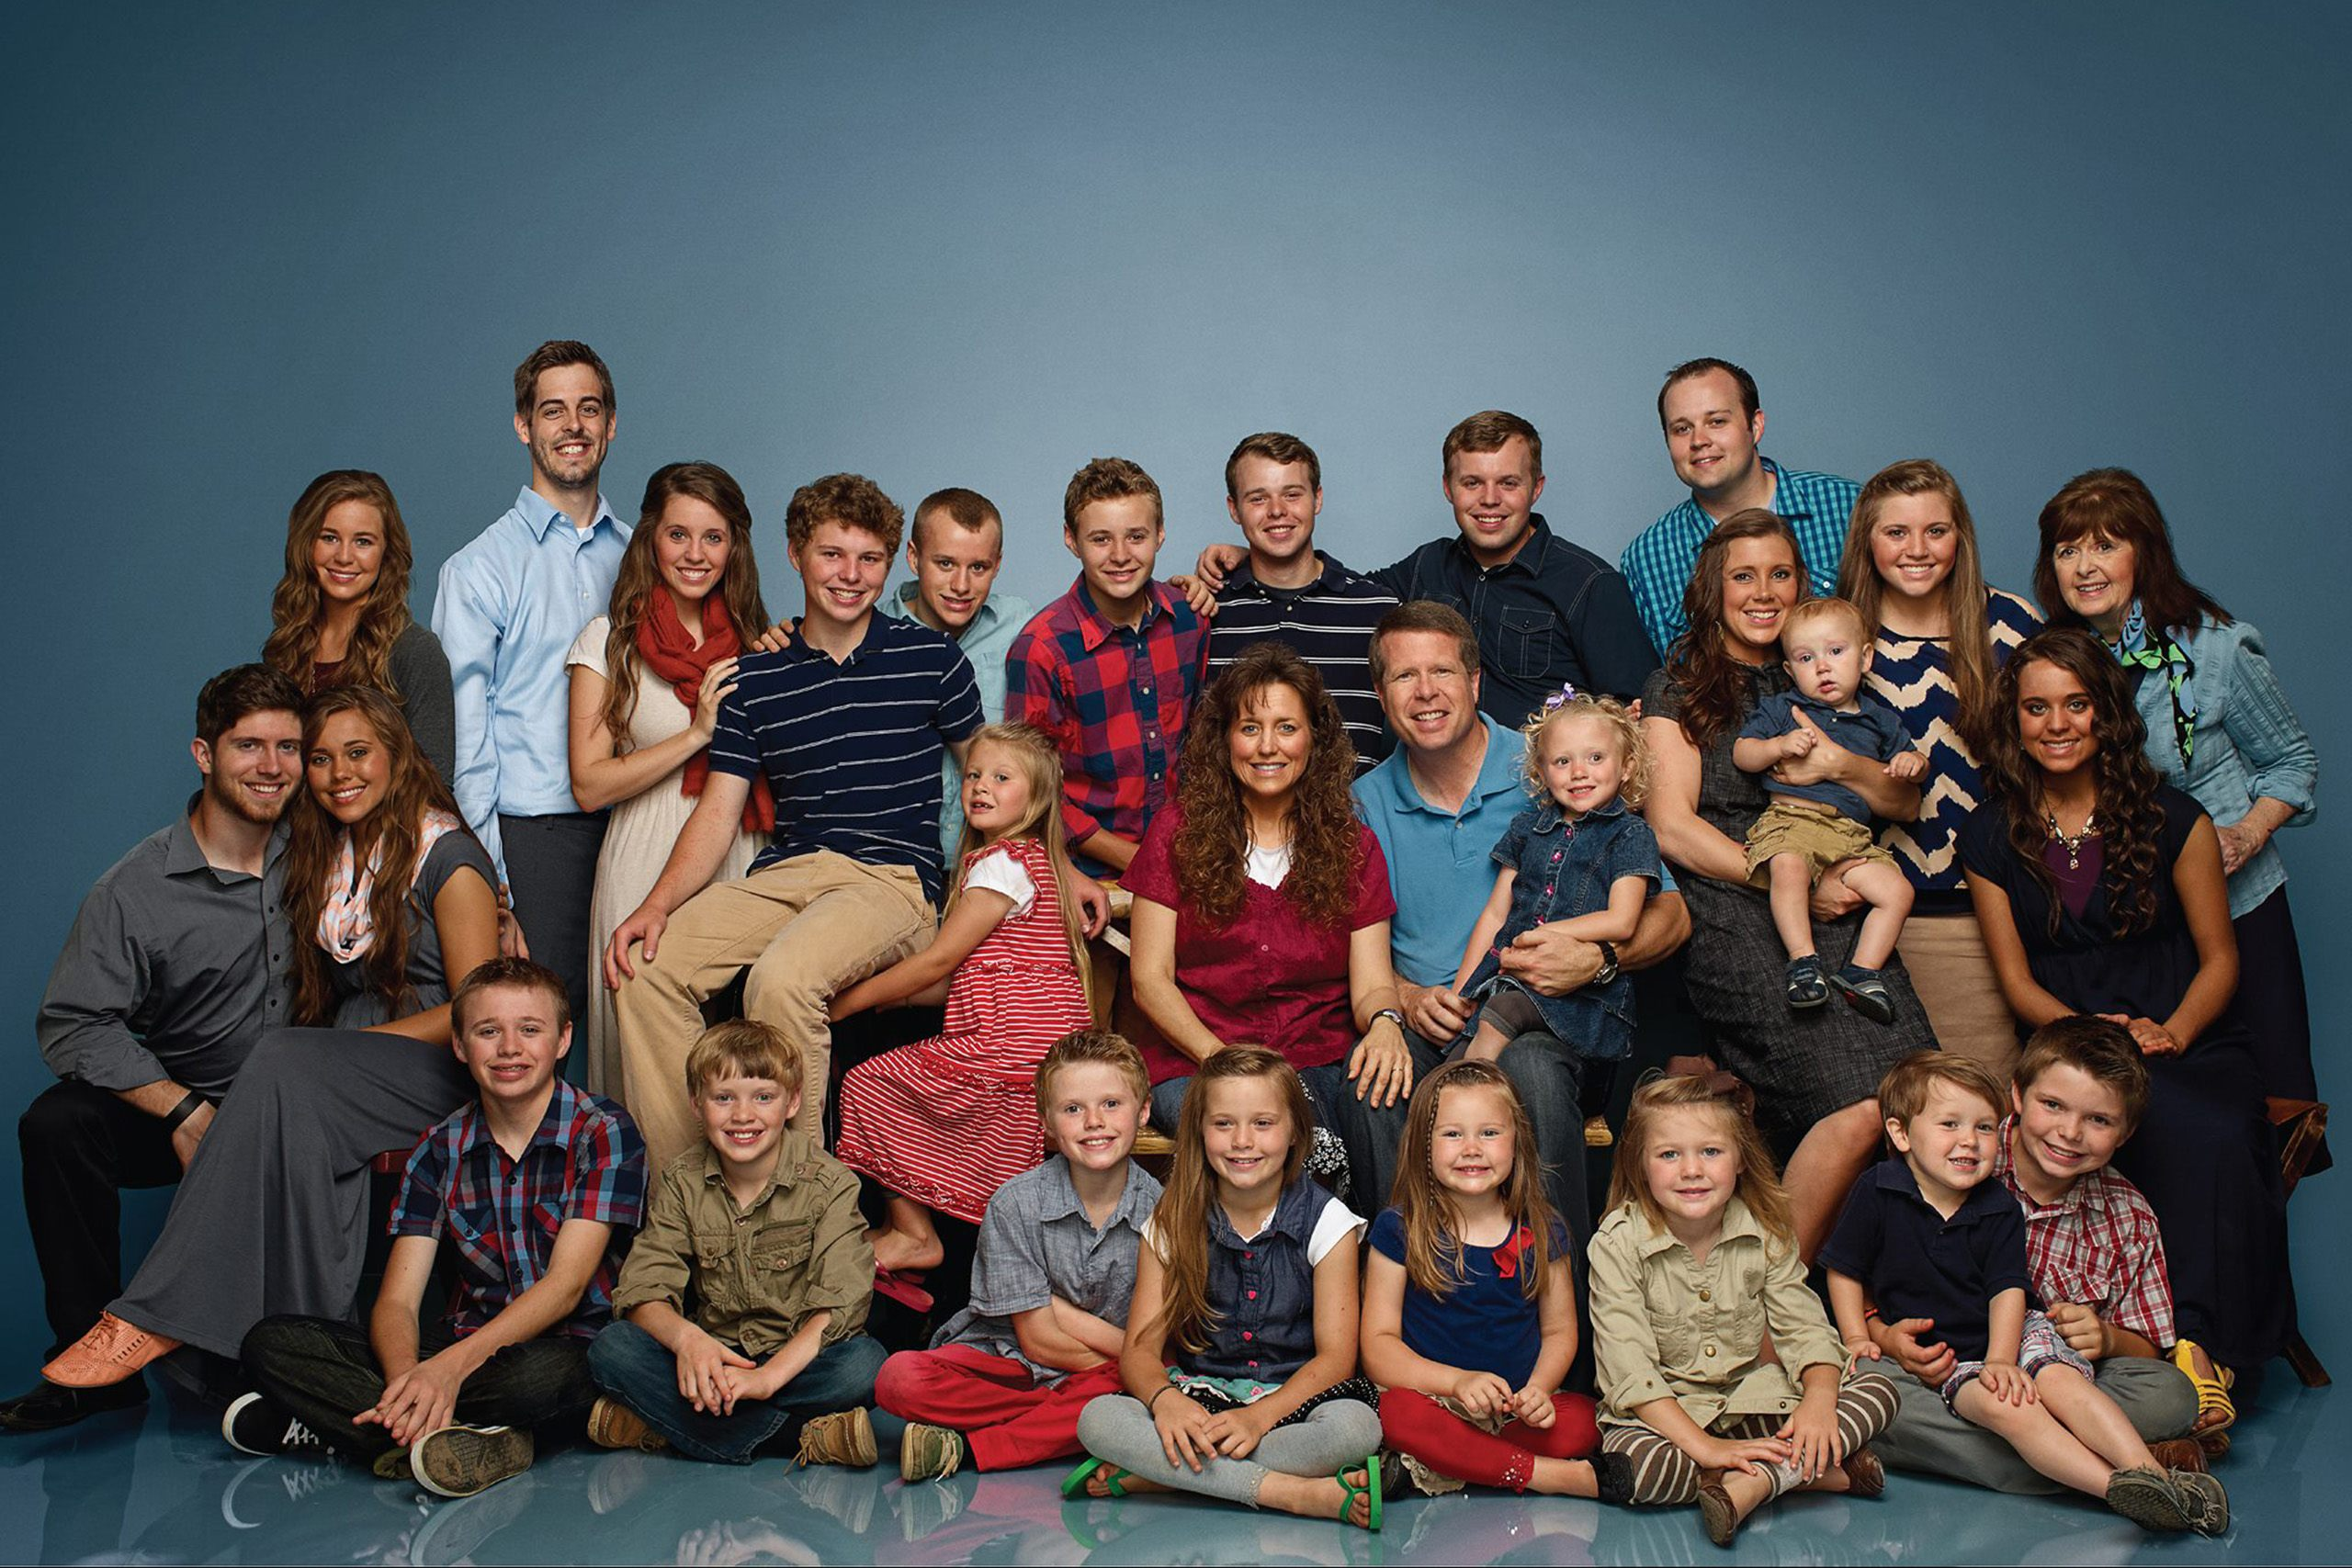 Dark Secrets the Duggar Family Doesn't Want You to Know